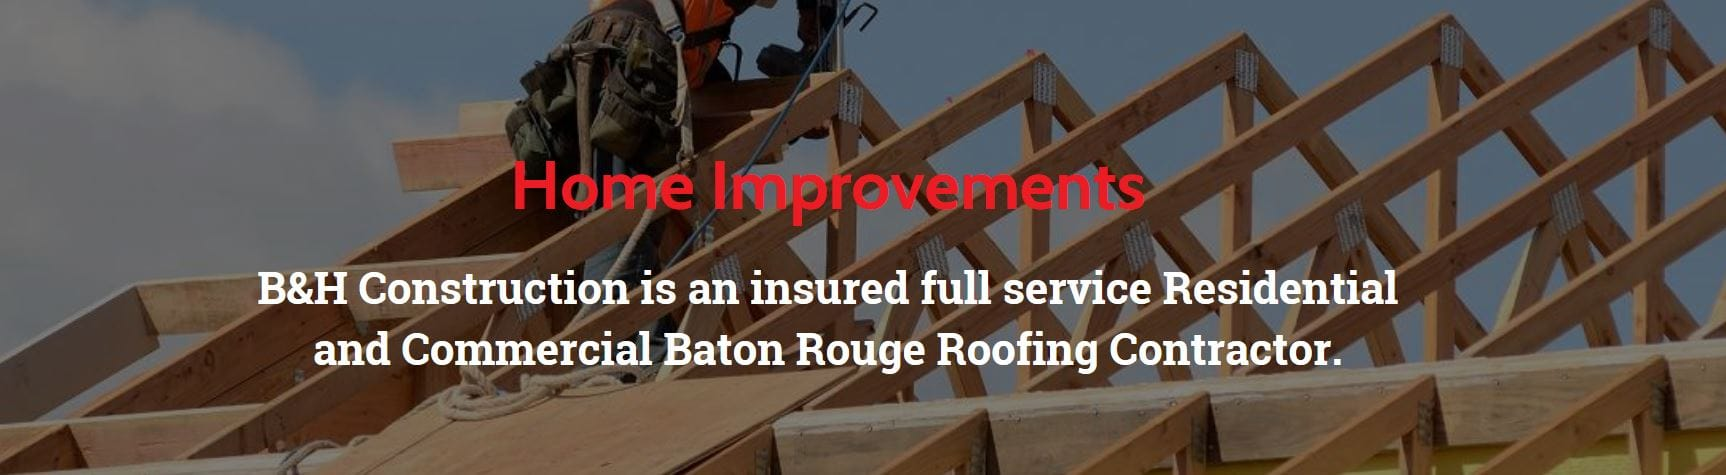 Damaged Roof? Licensed U0026 Guaranteed! Schedule A FREE Roof Analysis. (225)  384 6842